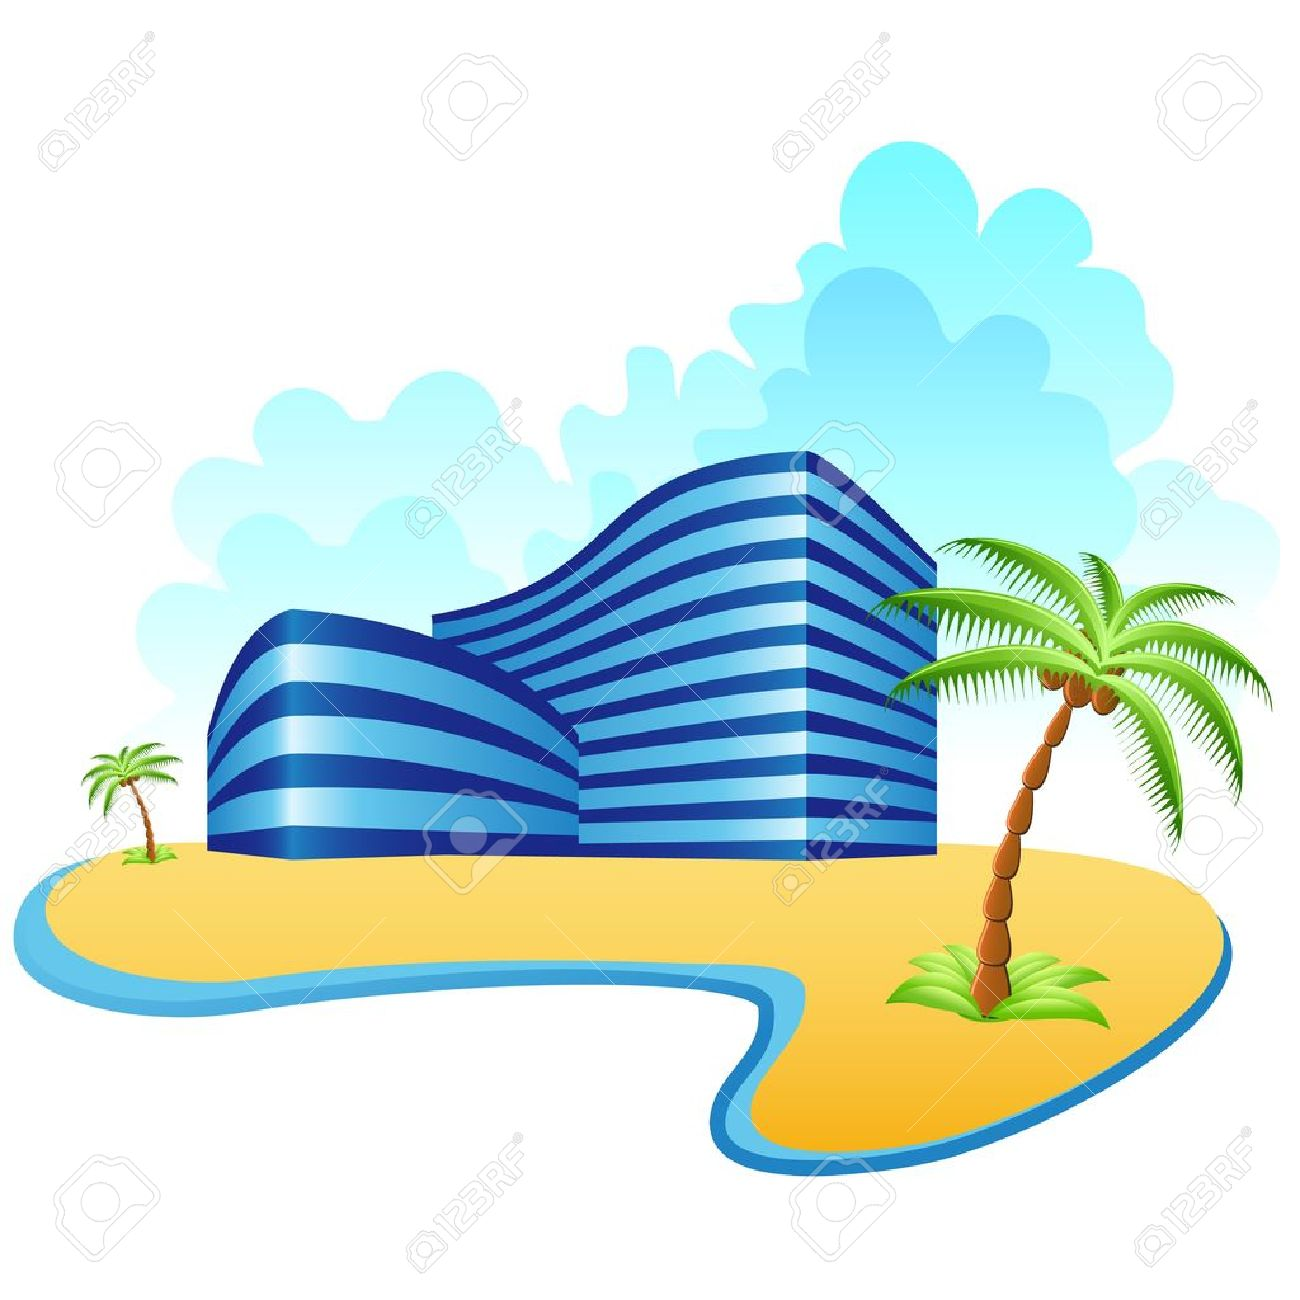 Hotel clipart holiday resort. Images free download best